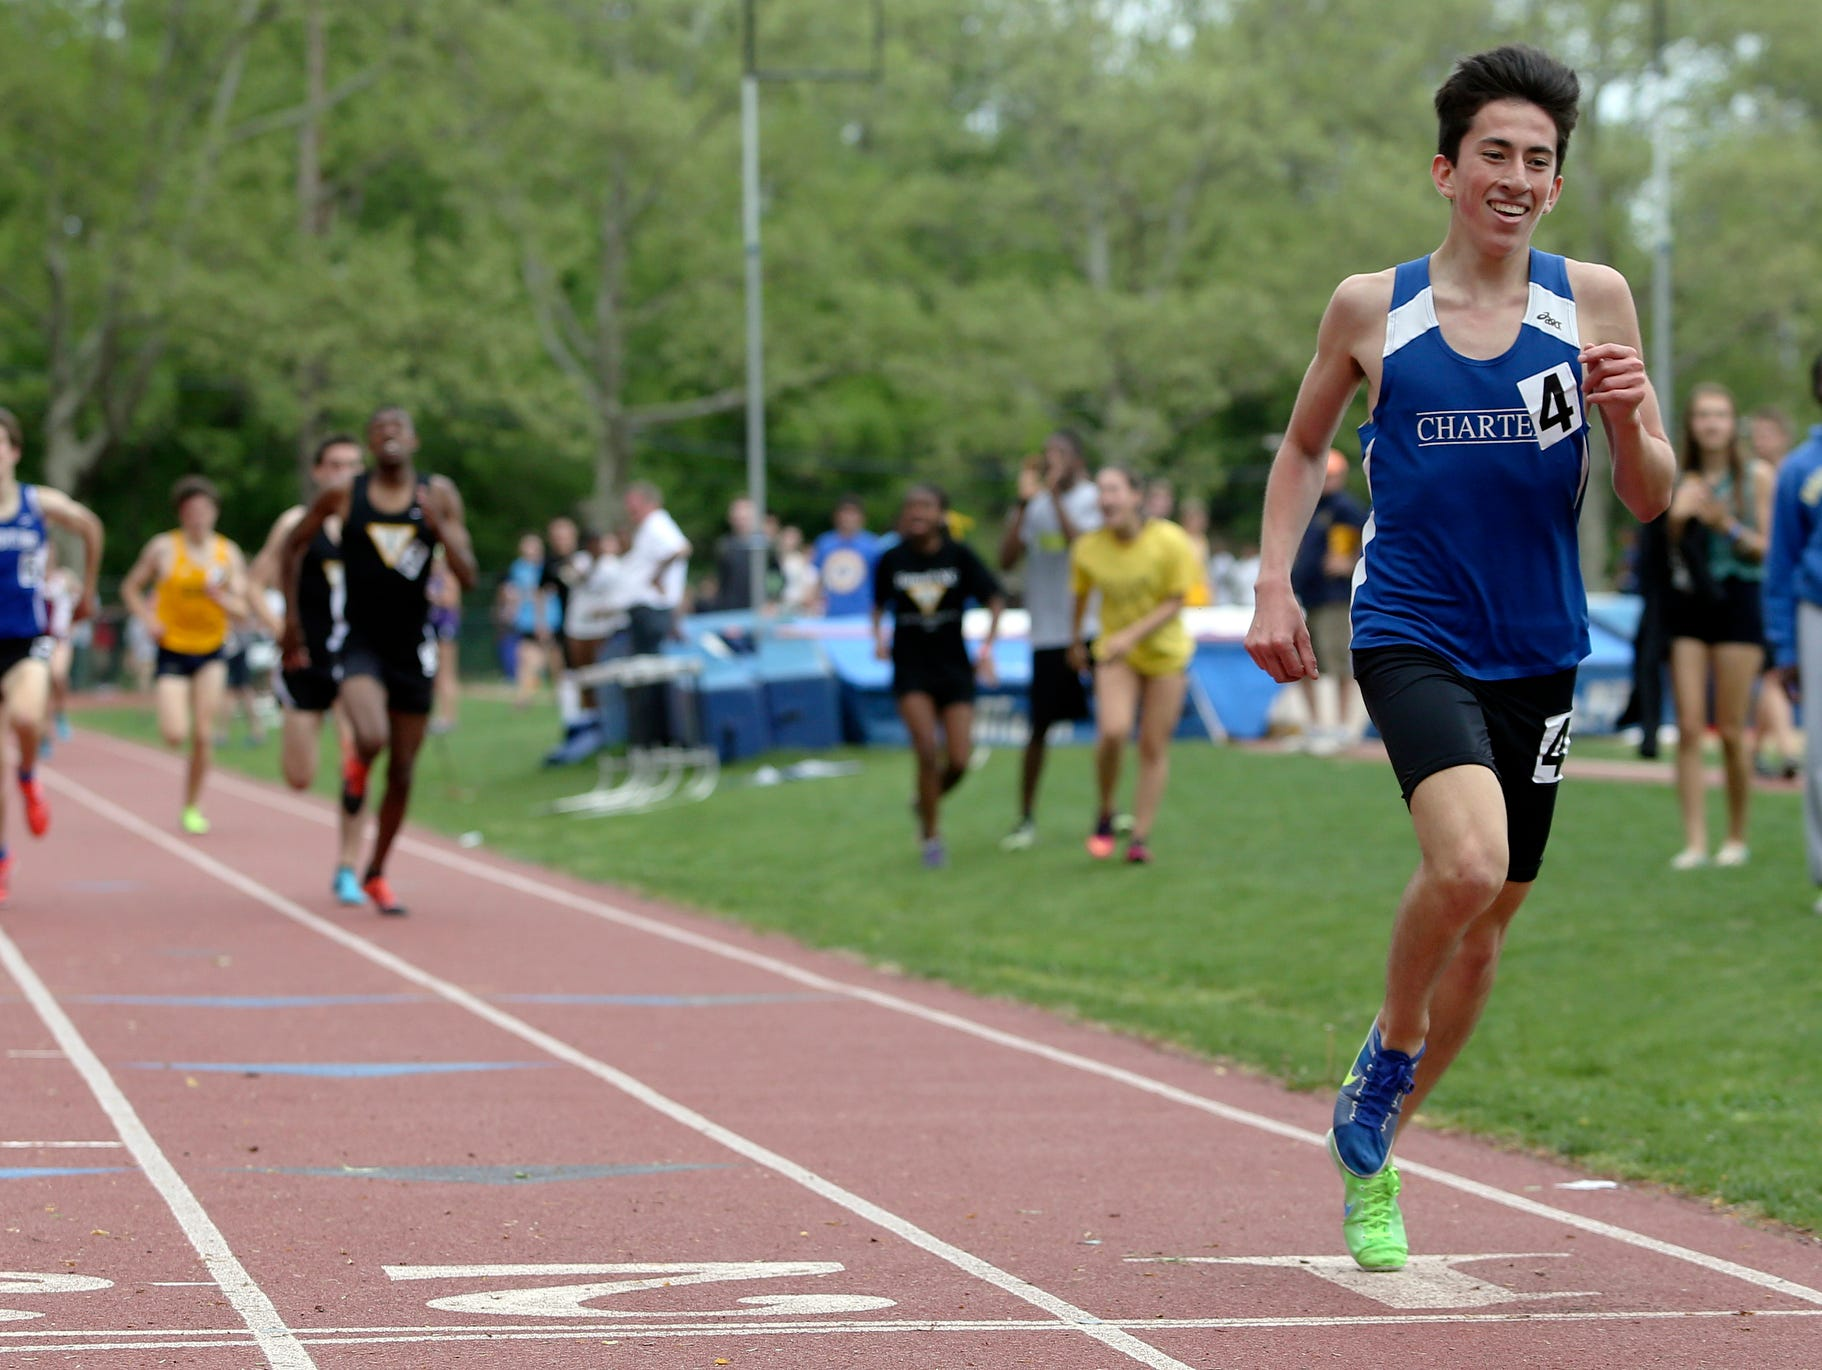 Charter School's Kieran Tuntivate, shown leaving the pack behind to win the 1600-meter run at the 2014 New Castle County Track and Field Championships at Baynard Stadium in Wilmington, won the event again this year.